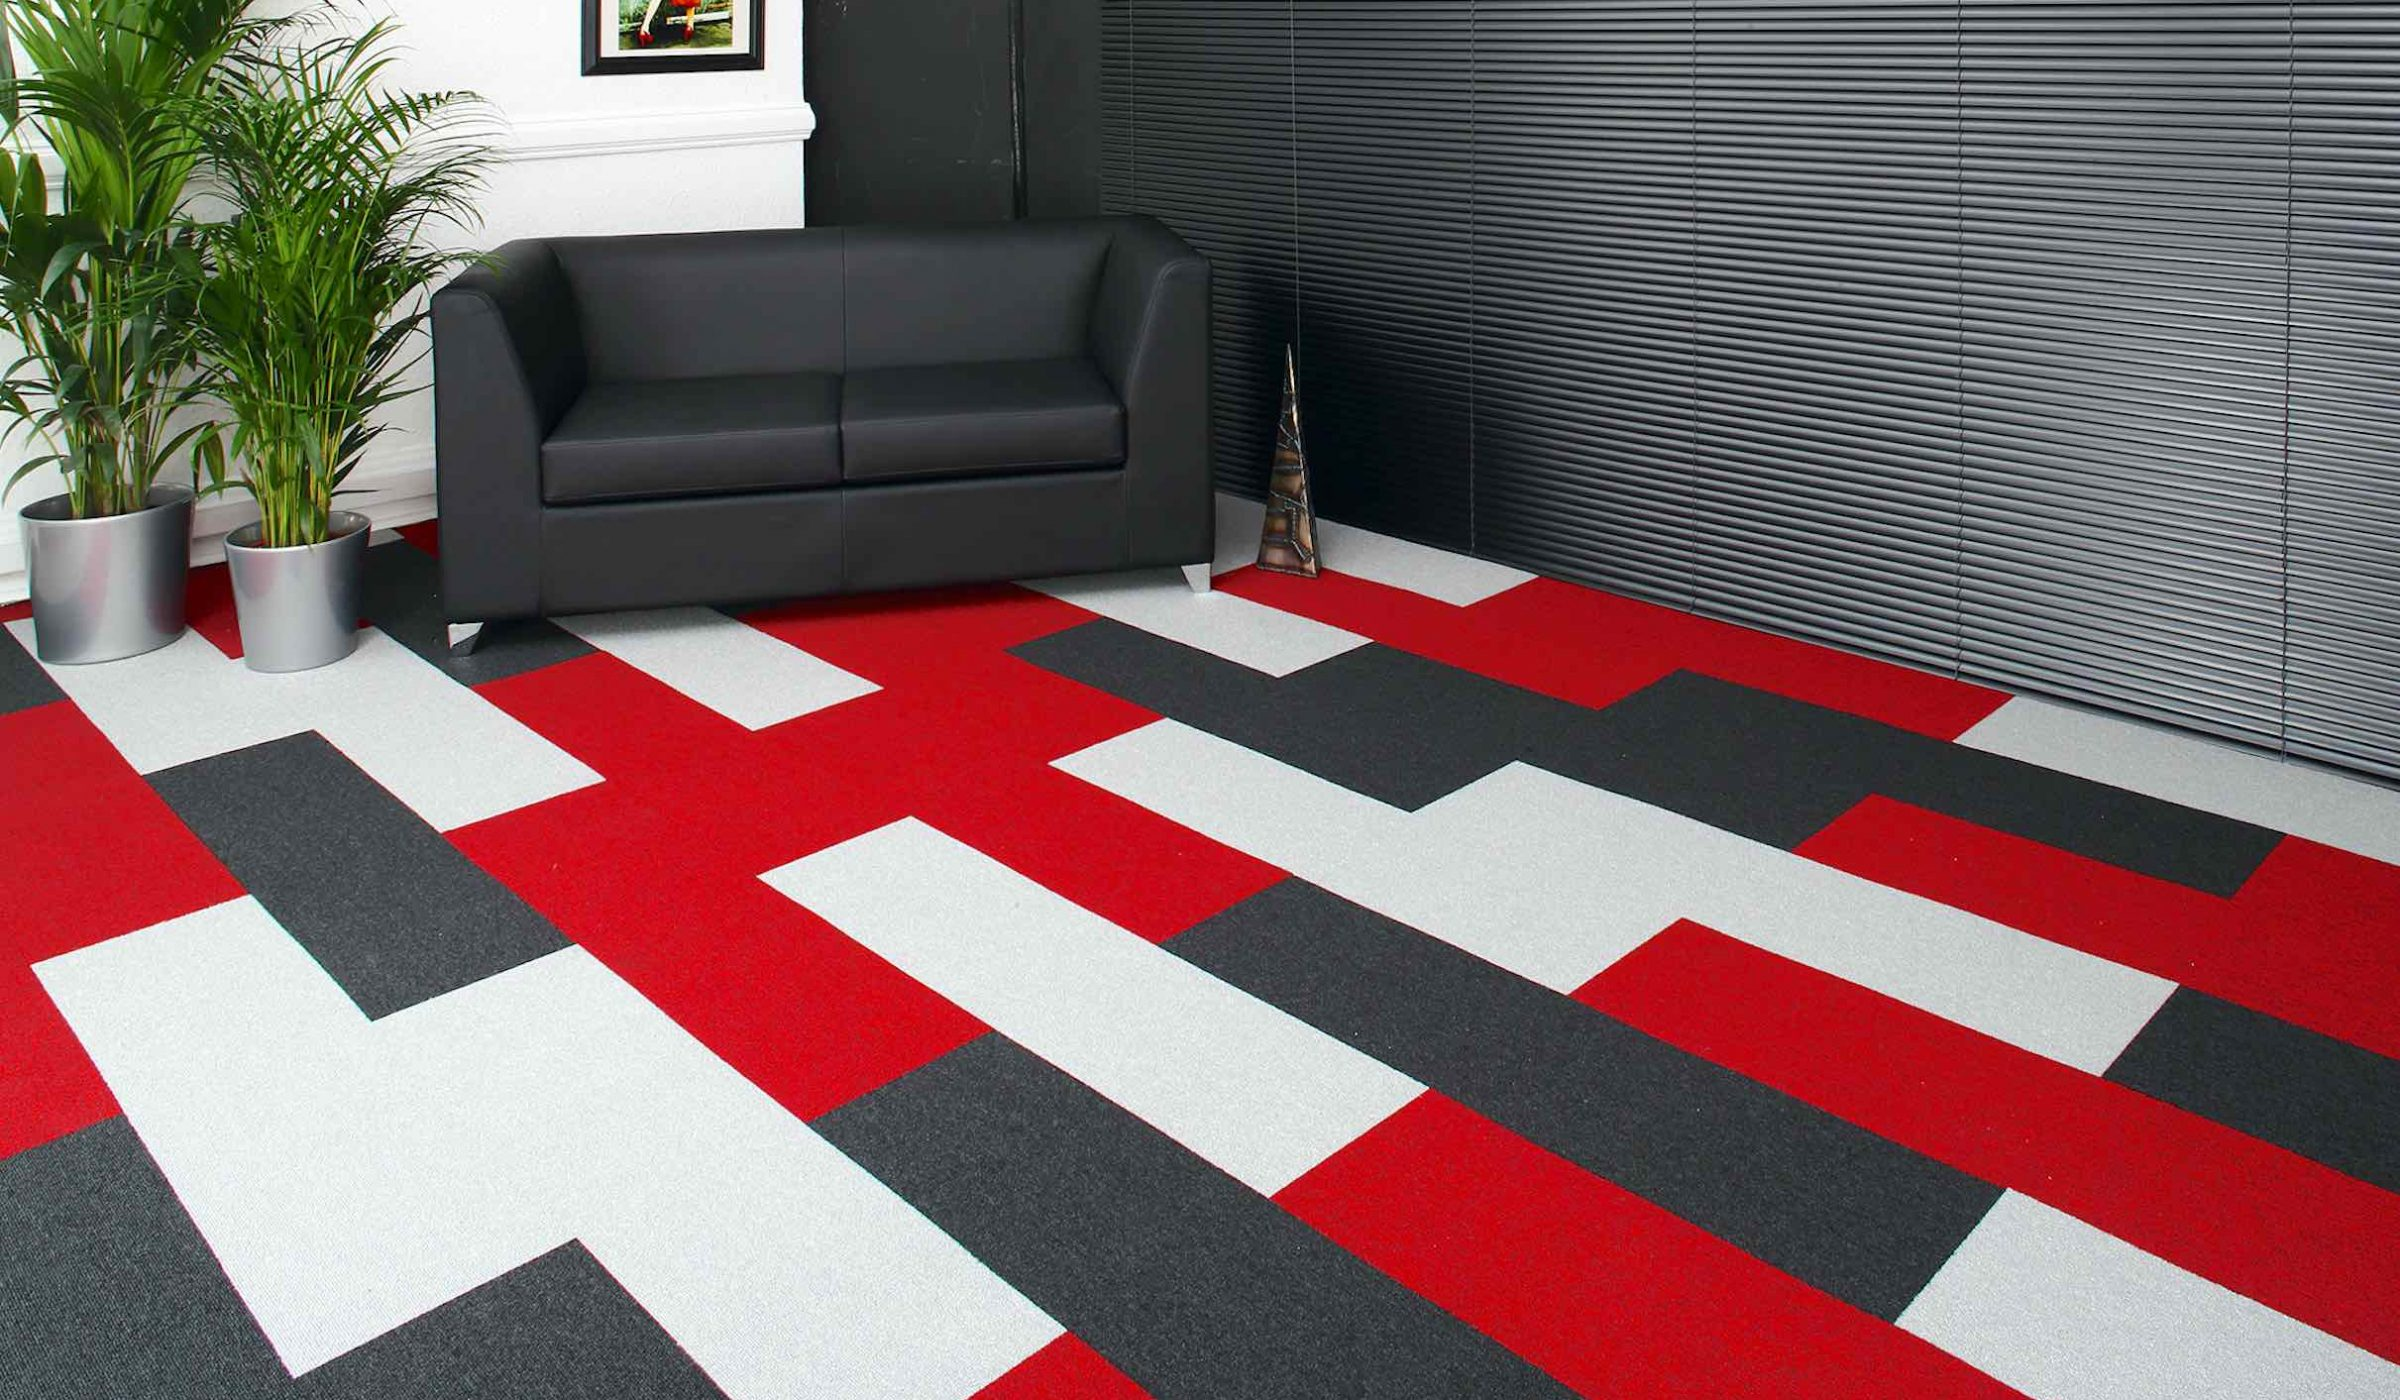 Design Dek | Paragon Carpet Tiles | Commercial Carpet Tiles | Design Carpet Tiles 7